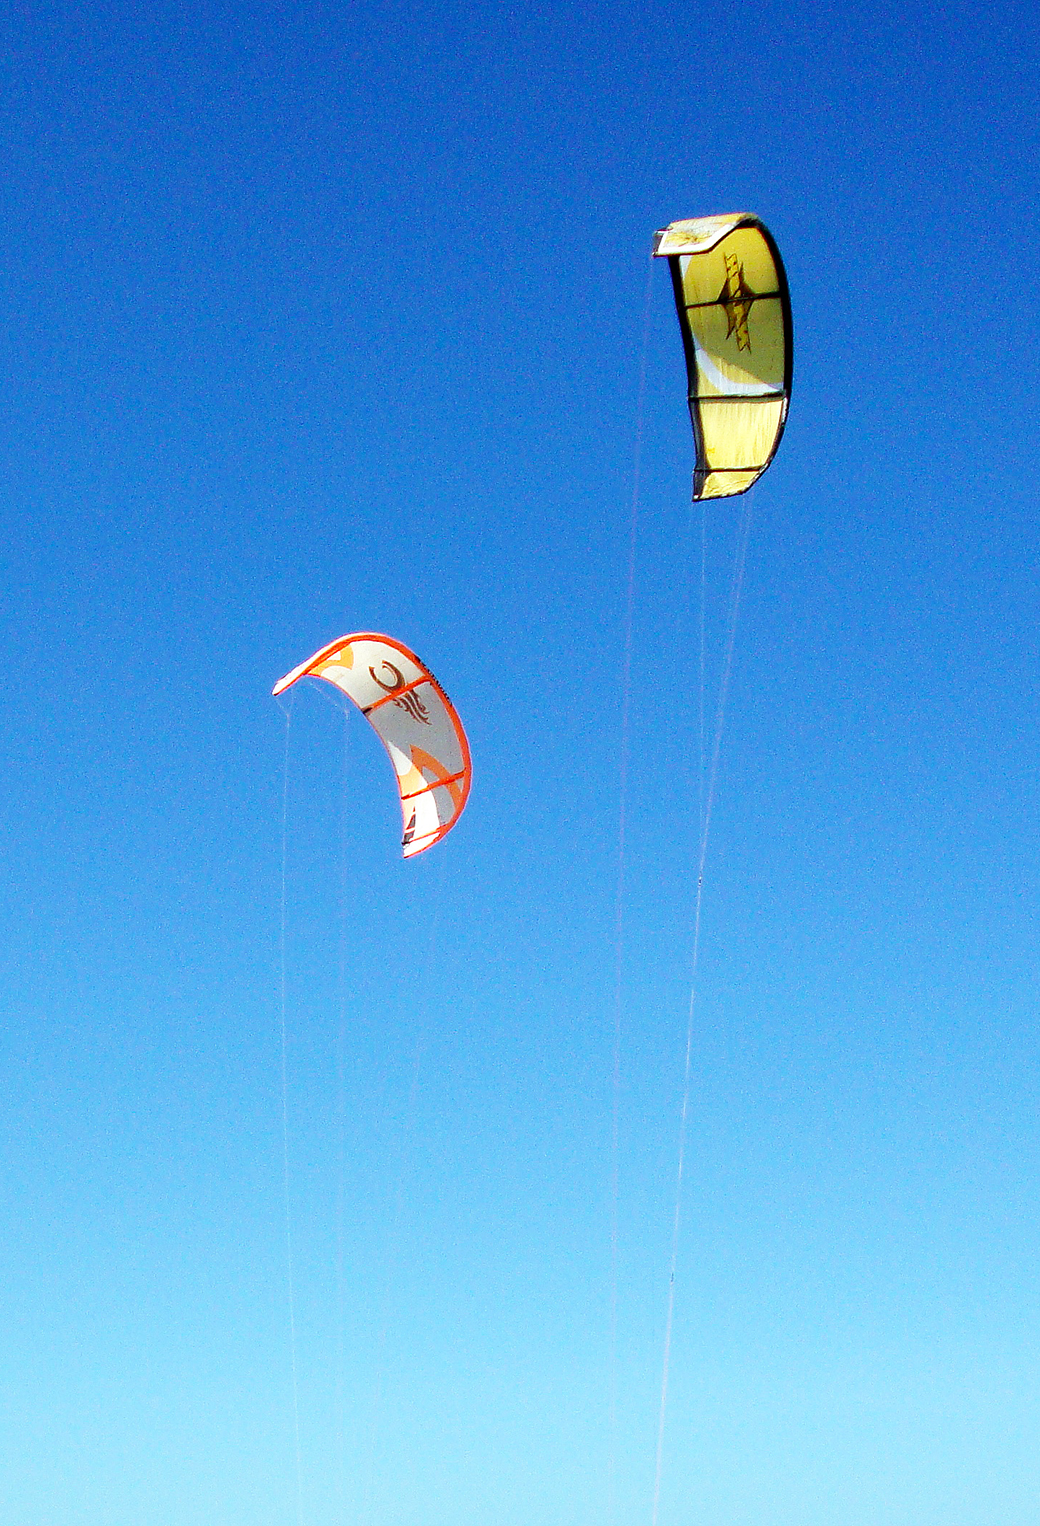 Kite Surf flying 3Wallpapers iPhone Parallax Kite Surf flying